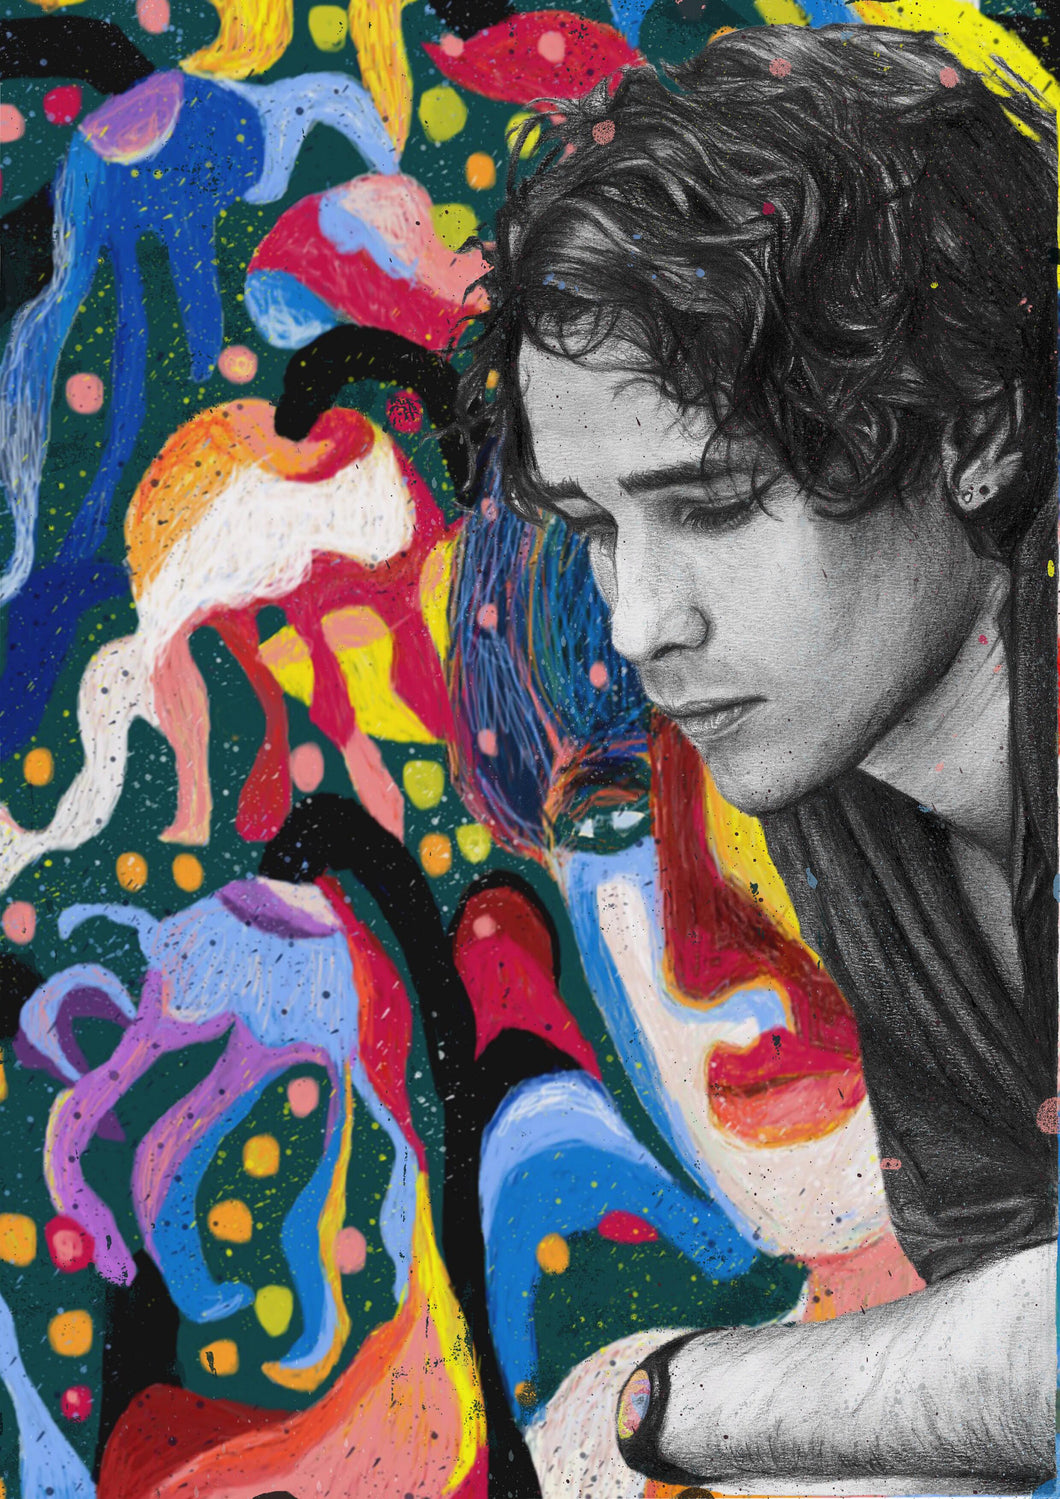 Jeff Buckley Grace black and white charcoal pencil portrait drawing abstract colour version tribute fan art print